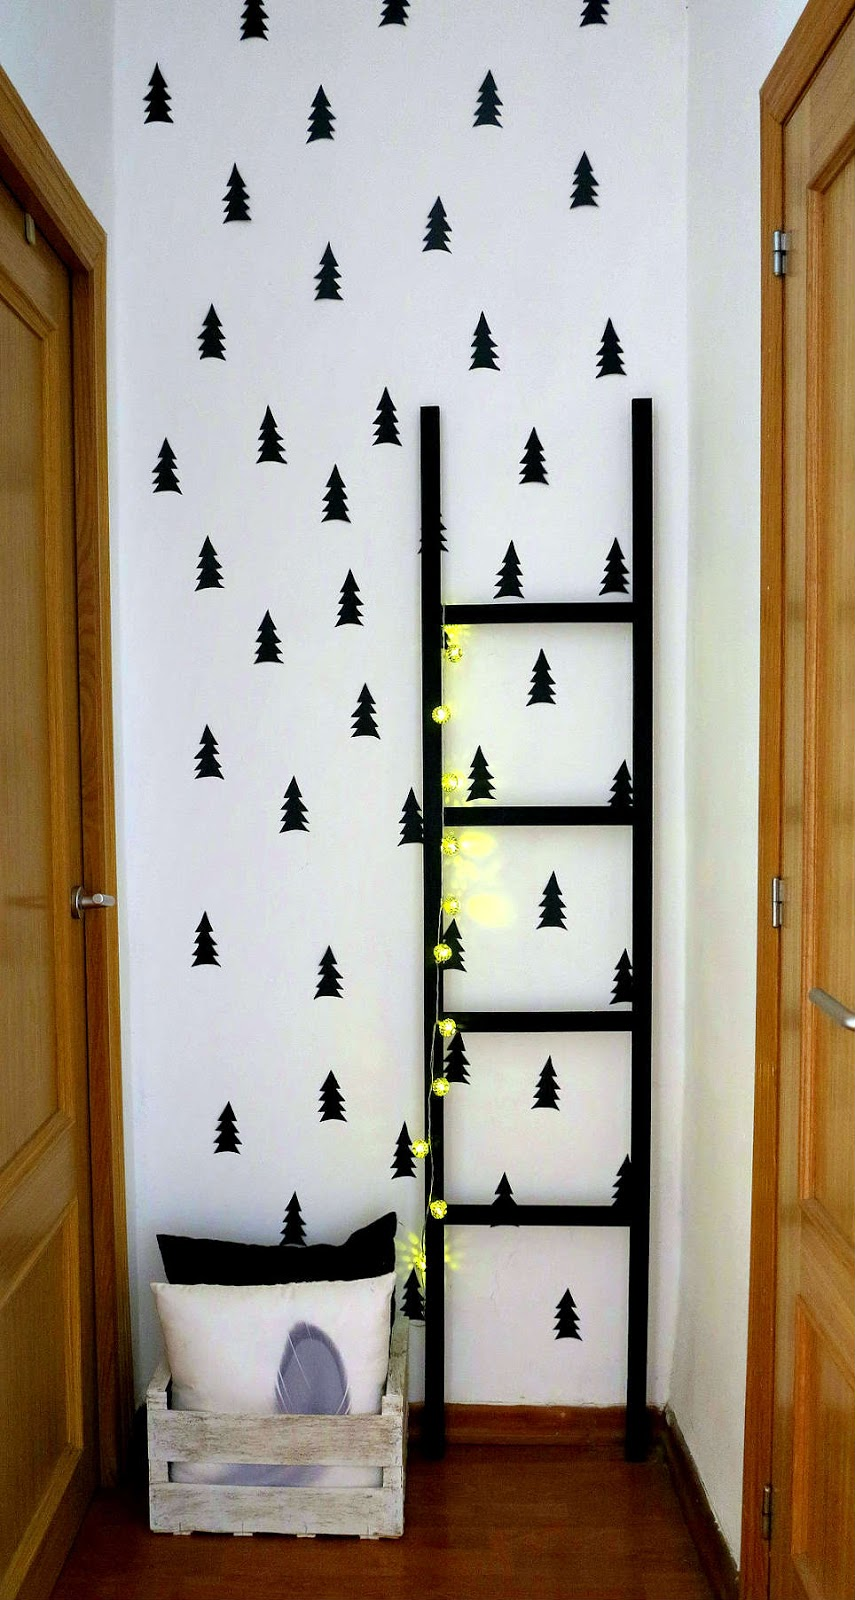 Small lowcost diy escalera y decorando la pared del pasillo for Decoracion paredes pasillos